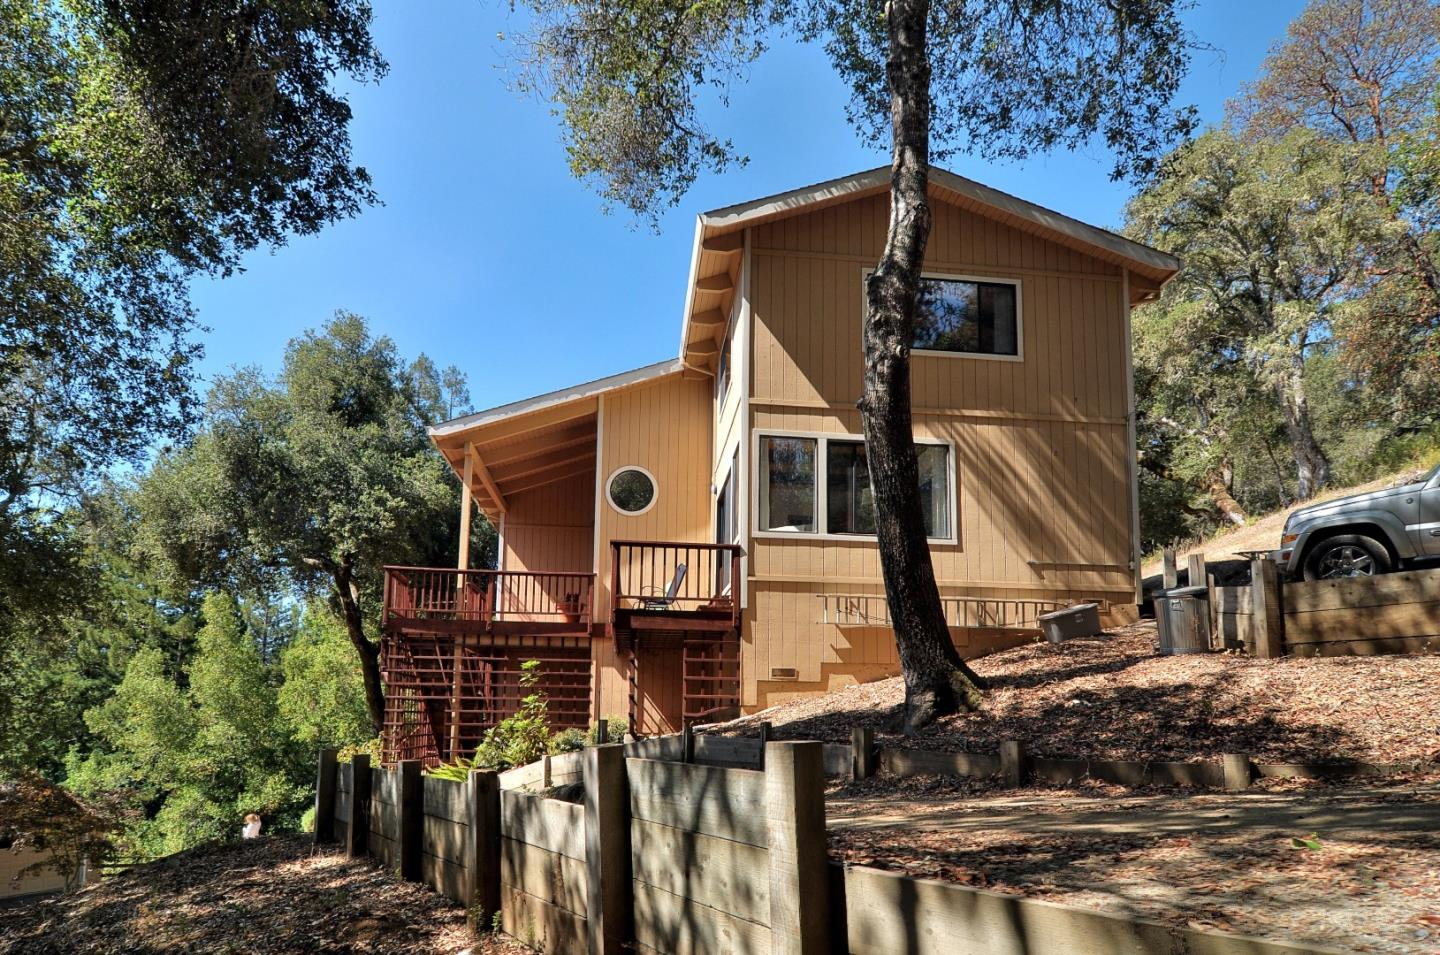 805 Old Mill Pond Rd, Los Gatos, CA